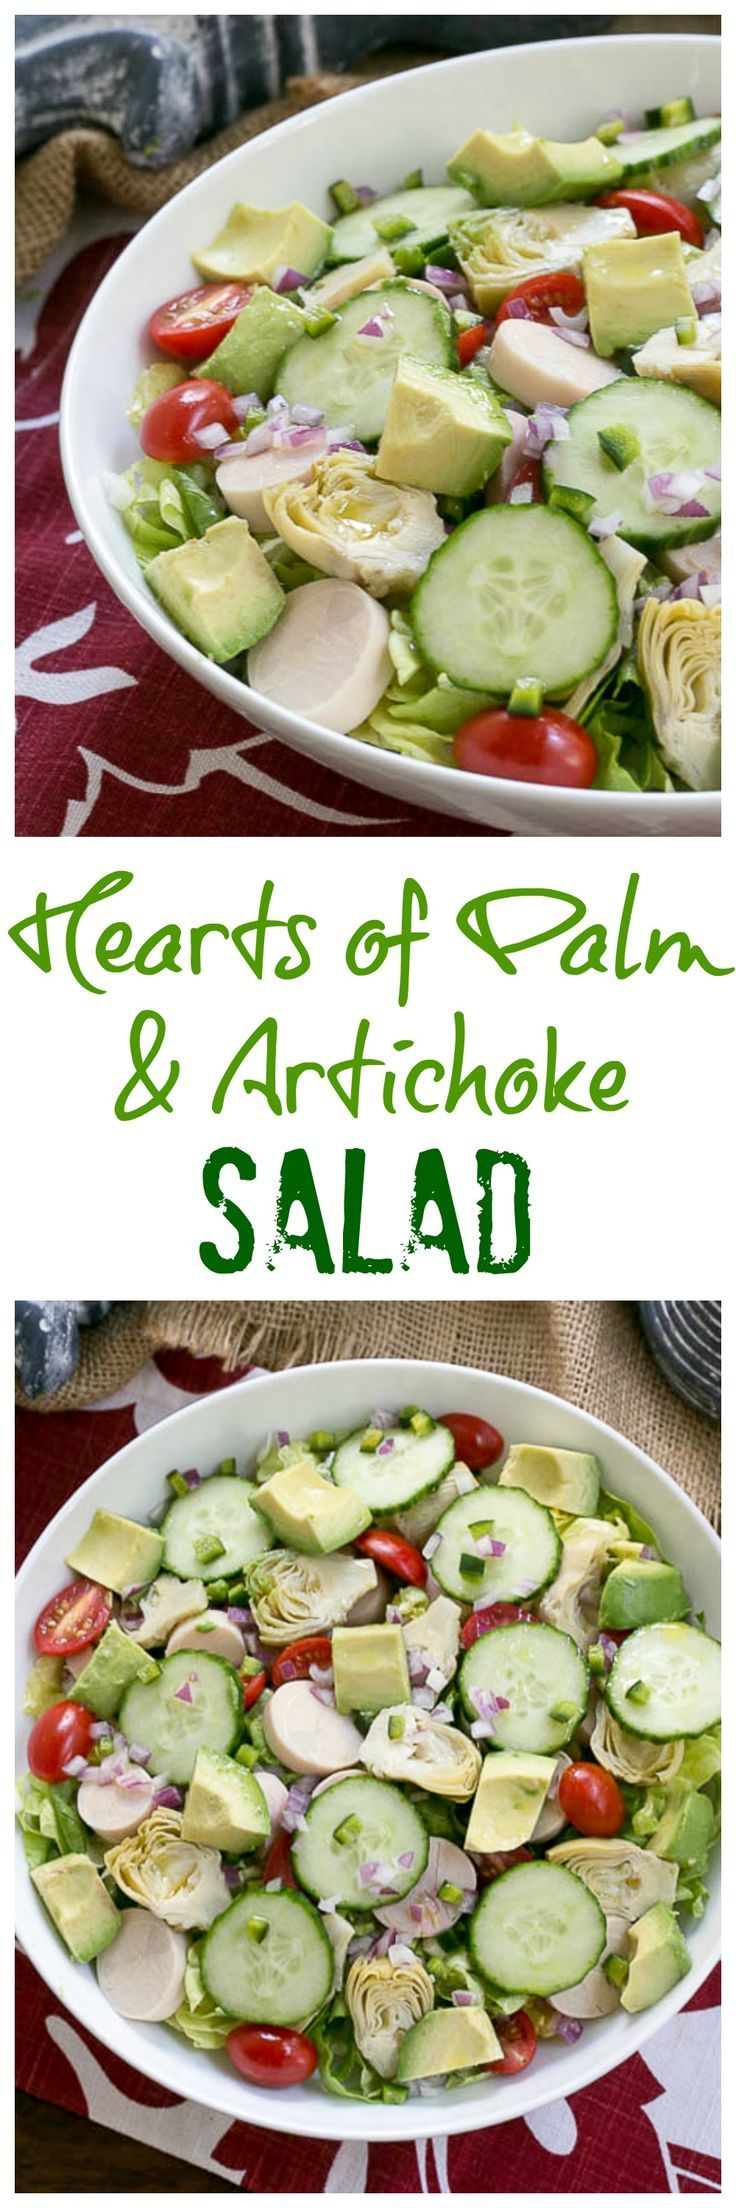 Hearts of Palm, Artichoke, Avocado and Butter Lettuce Salad /lizzydo/